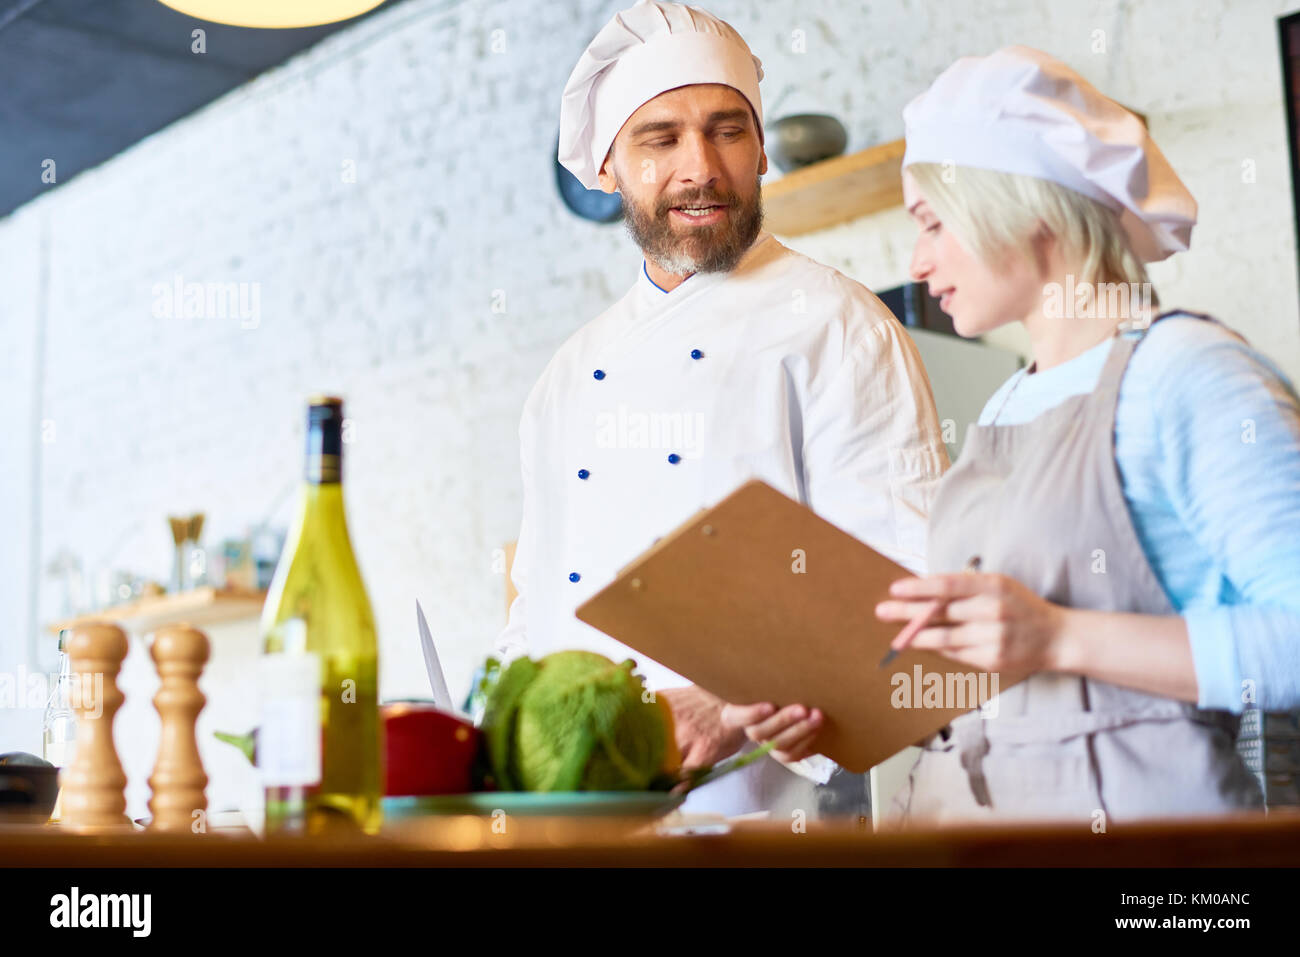 Sharing Culinary Secrets - Stock Image